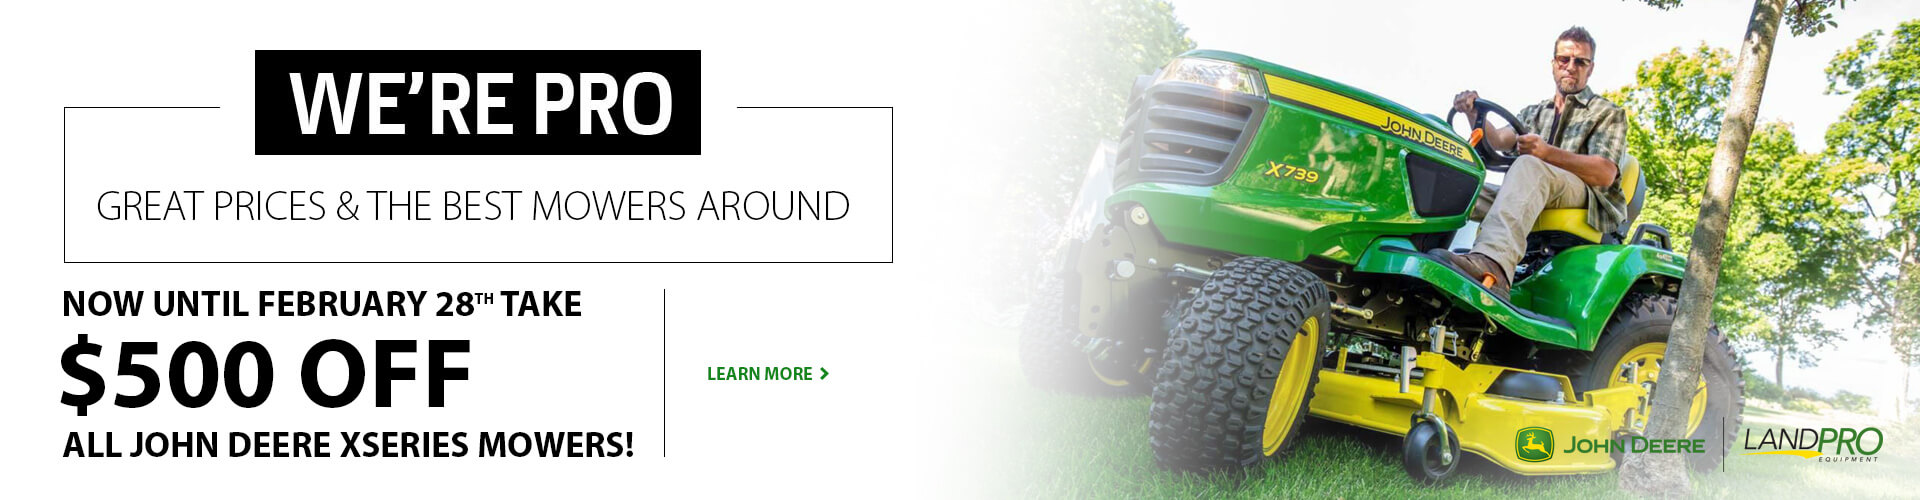 NOW UNTIL FEBRUARY 28TH TAKE